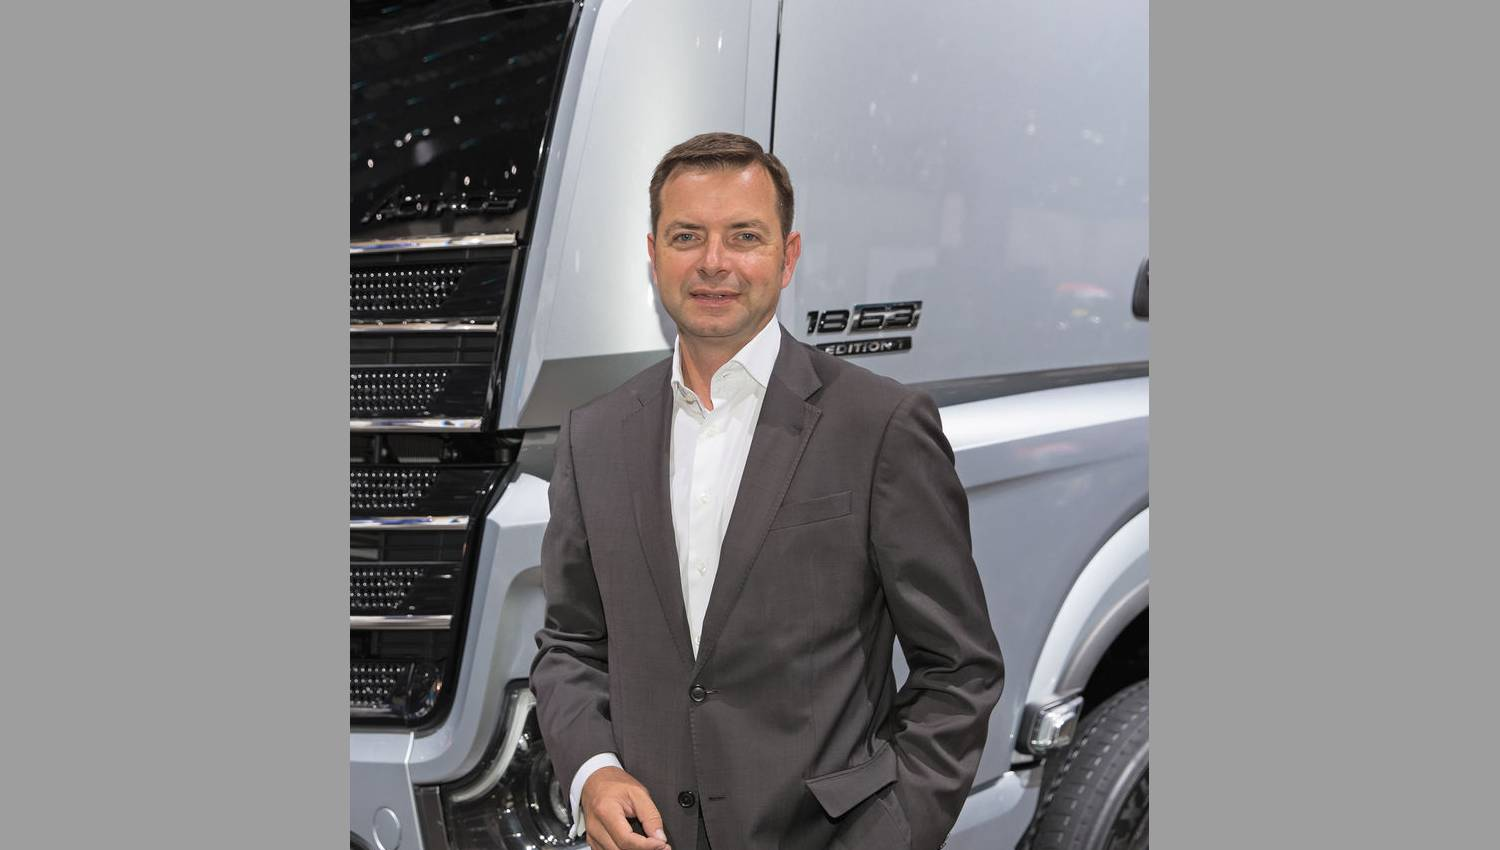 Michael Dietz Leiter Global Marketing, Mercedes-Benz Lkw Bild: IAA aktuell